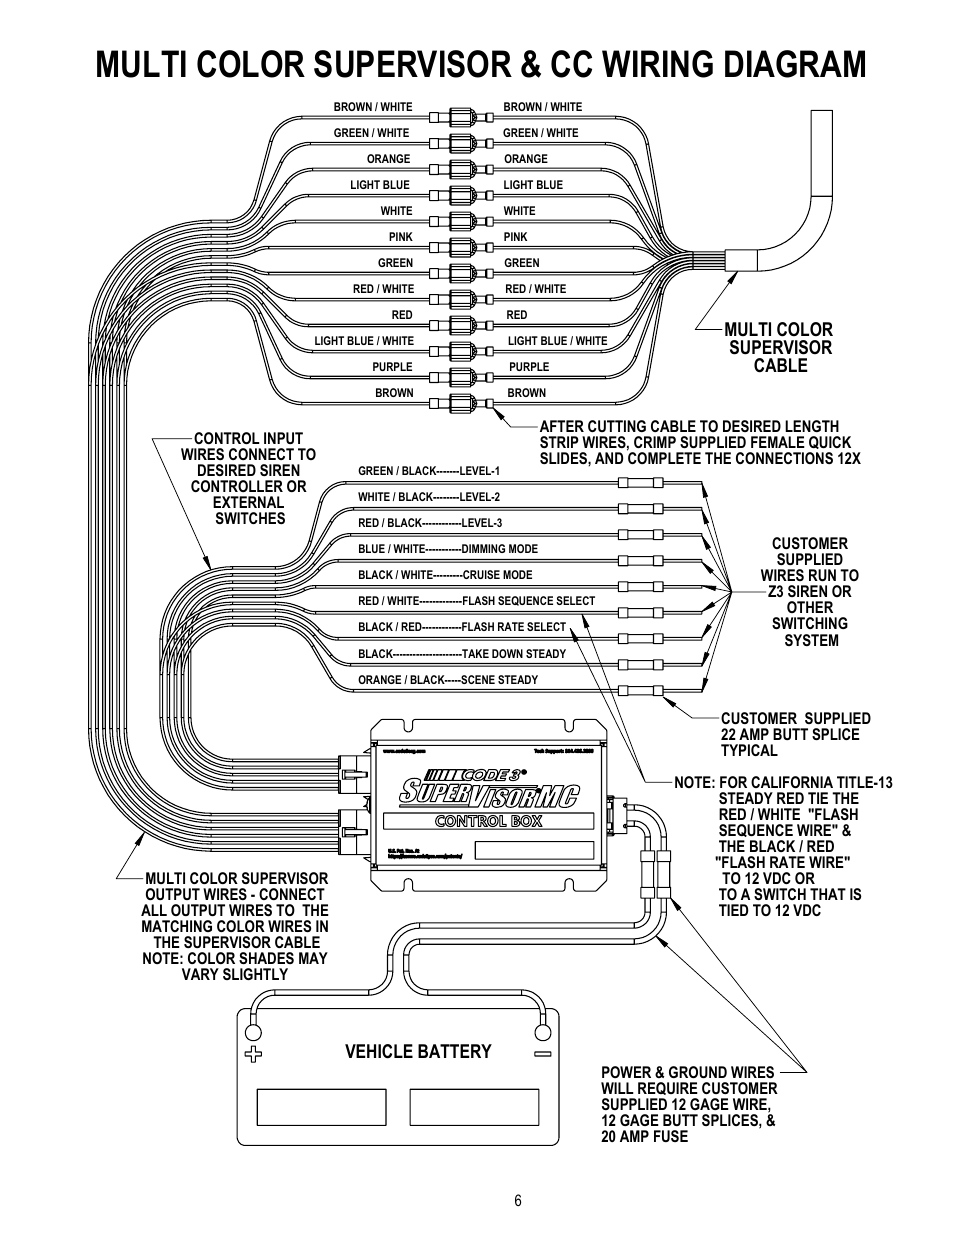 code 3 mc supervisor tahoe page6 multi color supervisor \u0026 cc wiring diagram multi color